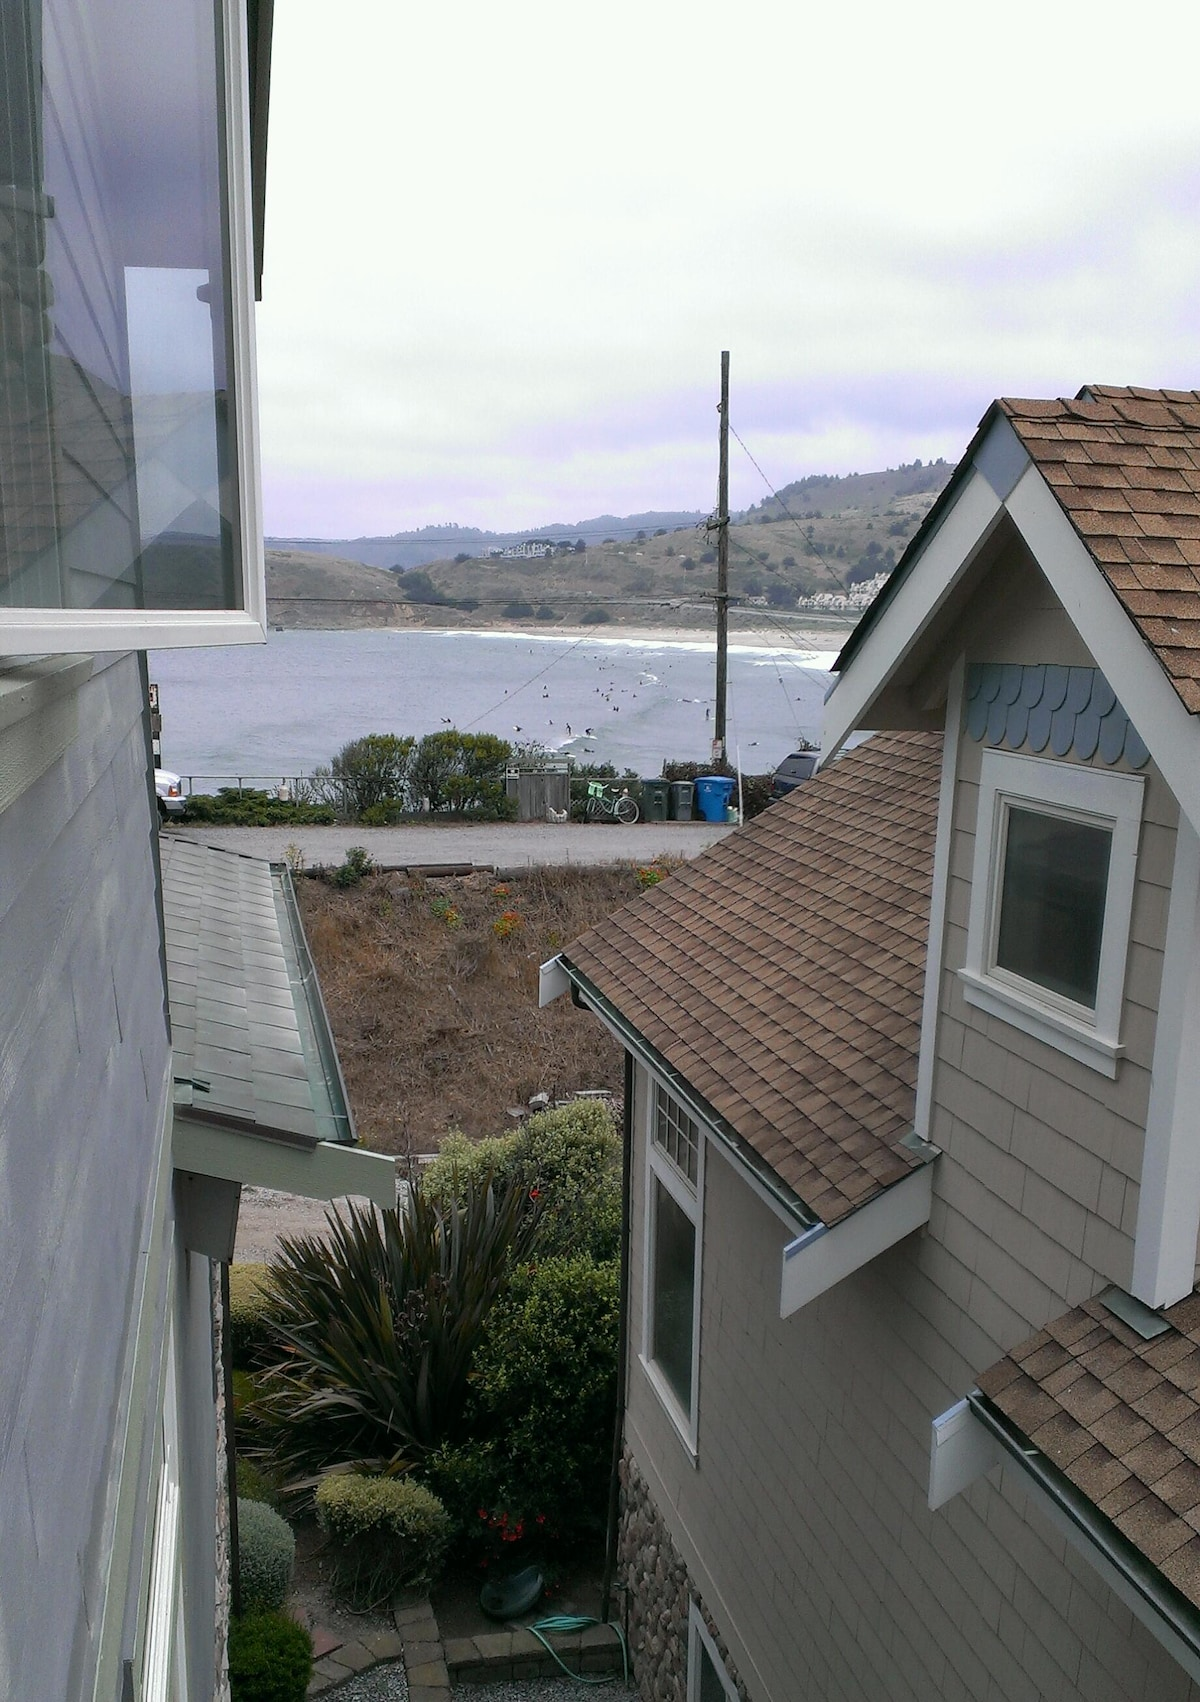 View from the deck, Pacific Ocean and Linda Mar Beach, a popular surfing spot.